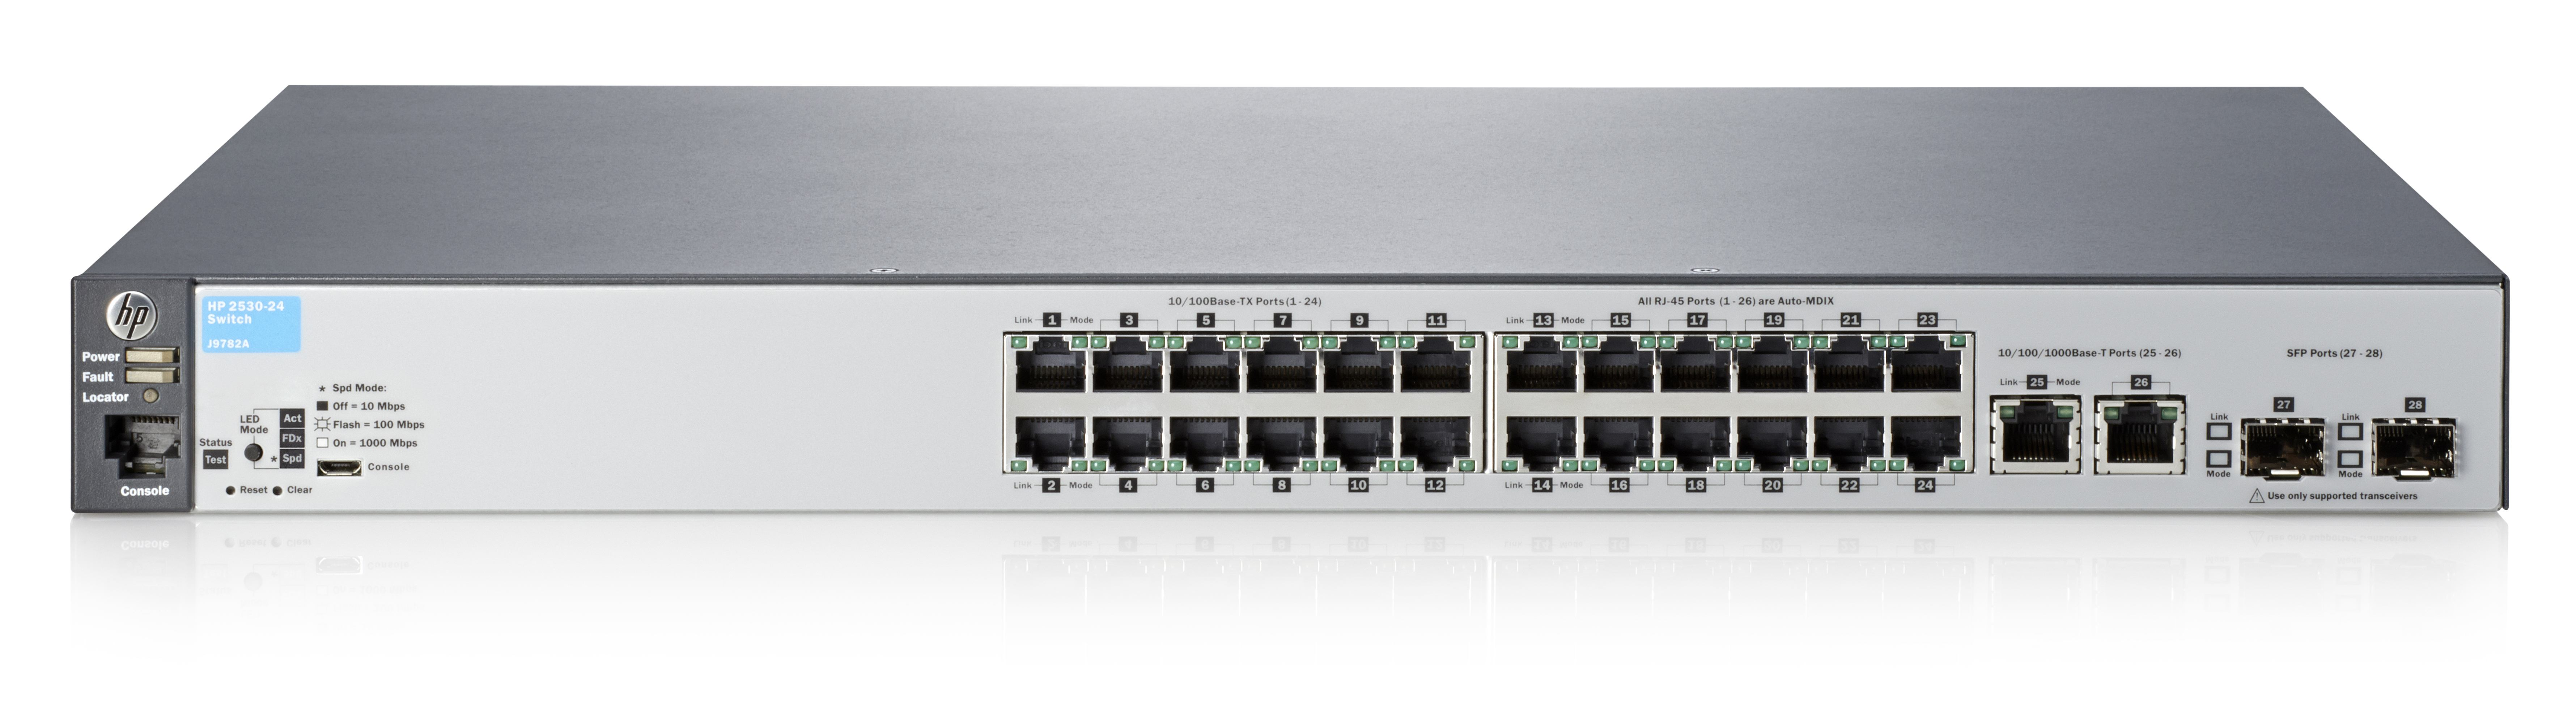 HPE Hewlett Packard Enterprise Aruba 2530-24 Managed L2 Fast Ethernet  [10/100] Grey 1U